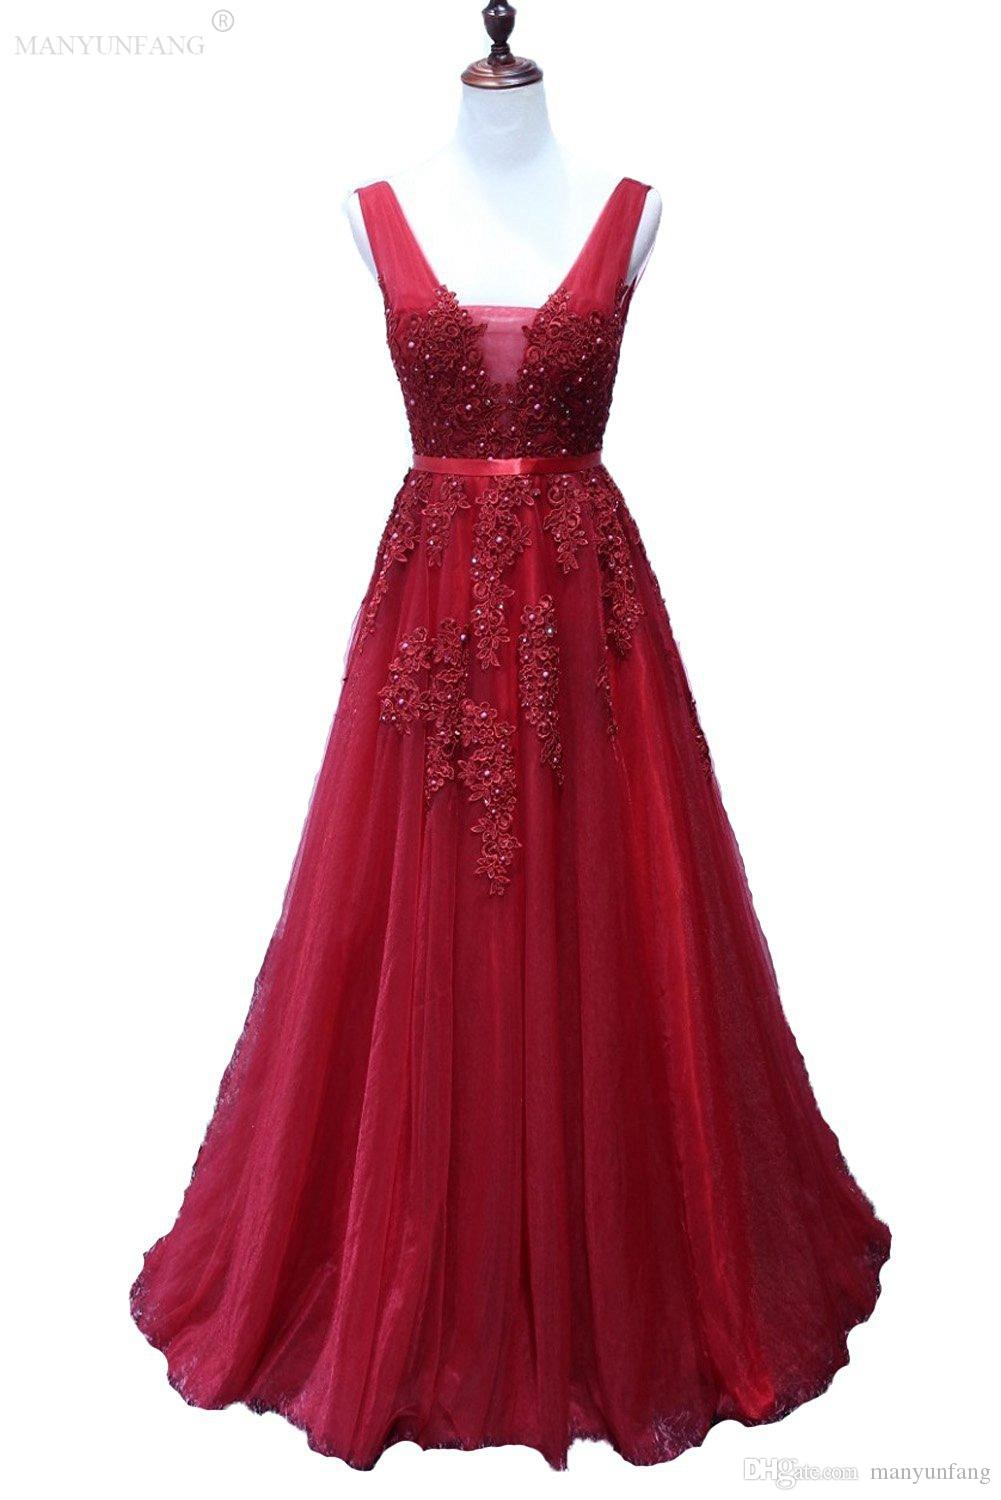 Vestido 2018 Red Long A Line Elegant Prom Evening Dress Crew Neck Spaghetti  Lace Party Gown Special Occasion Dresses Pleat Evening Gown Maxi Dress  Evening ... 2b6f2962b292